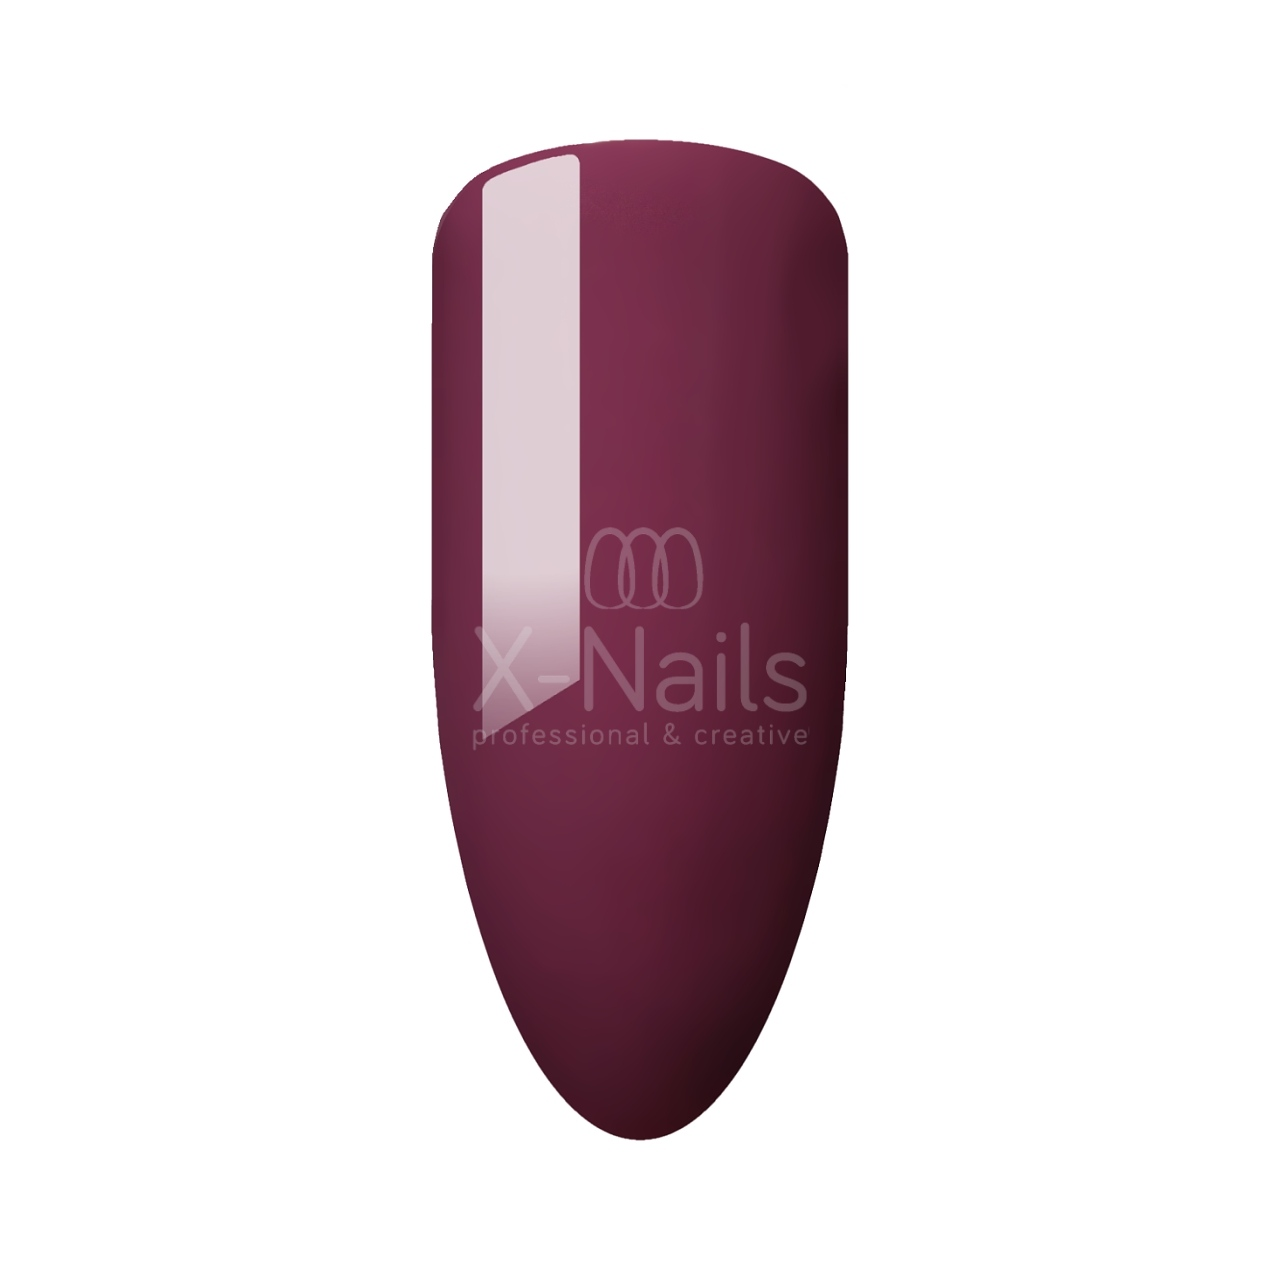 X-NAILS gel lak Amazing Line, 5 ml - MULBERRY